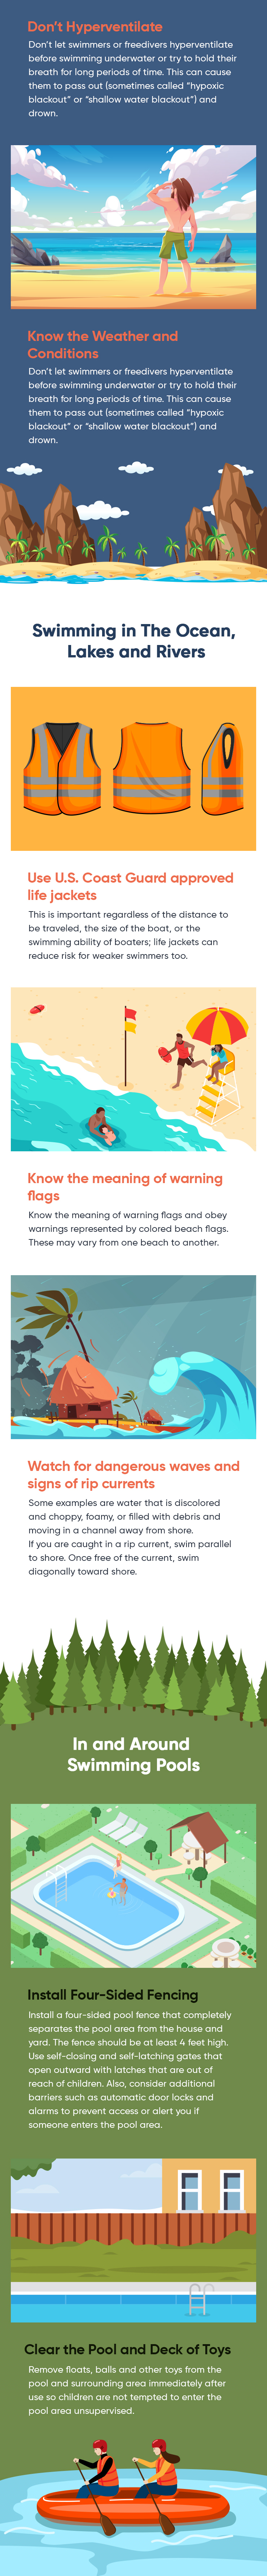 How to prevent unintentional drownings